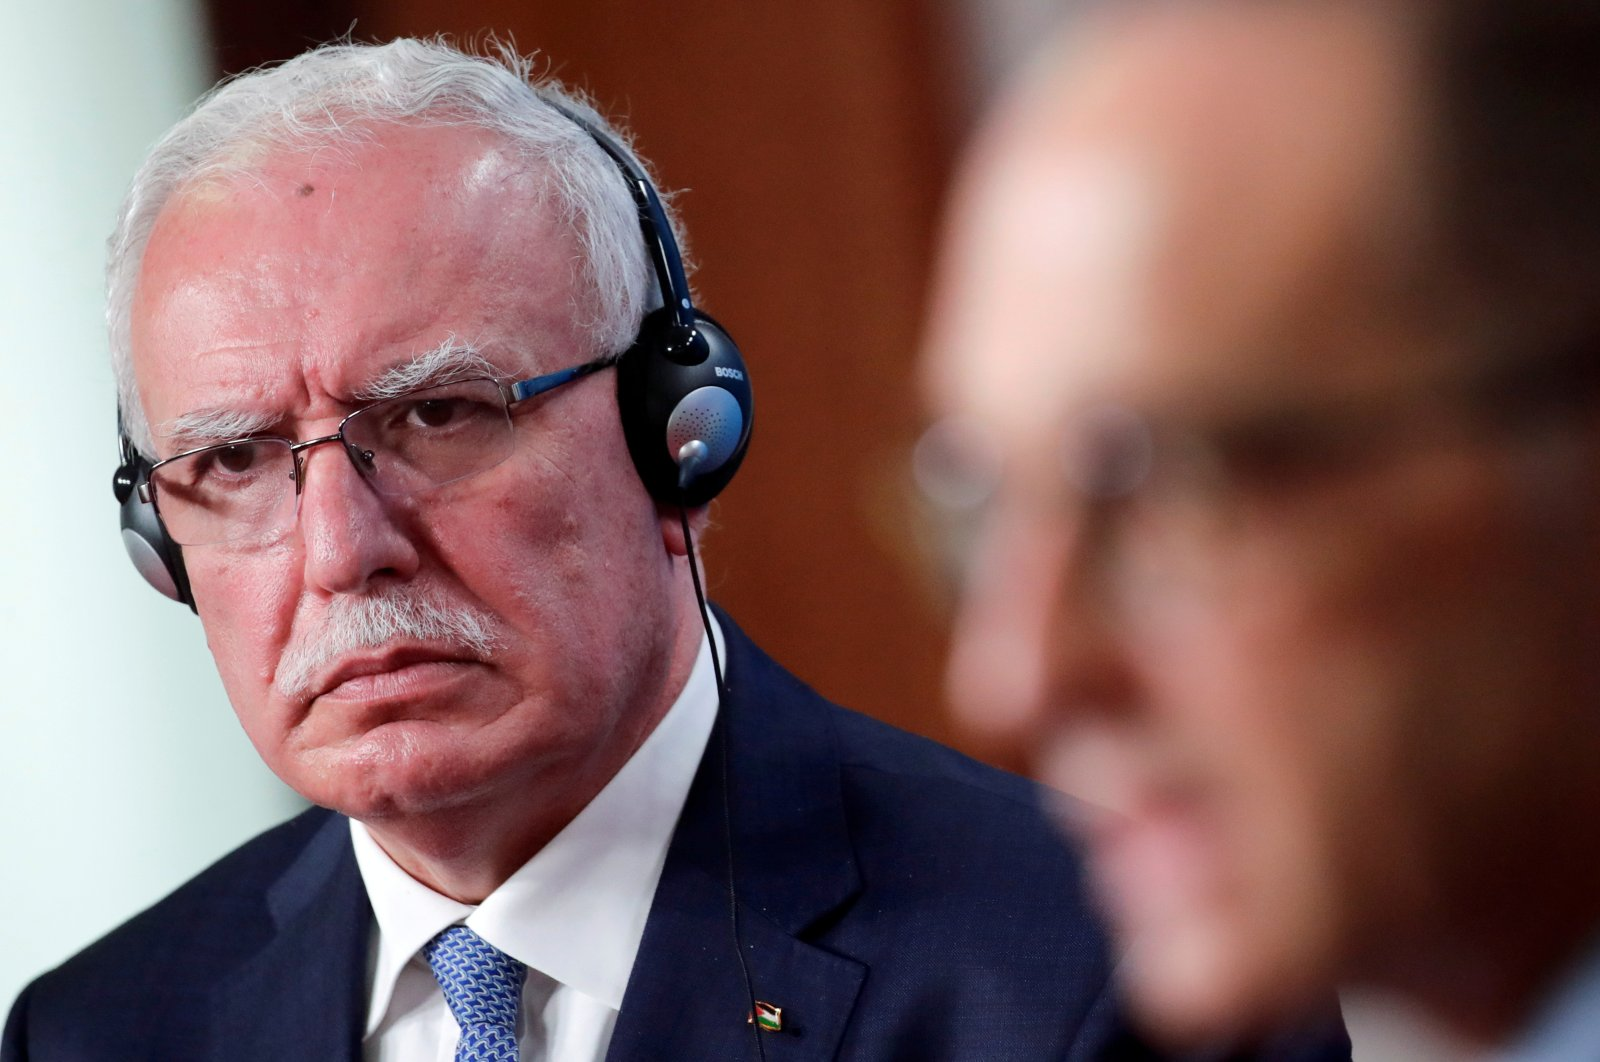 Palestine Foreign Minister Riyad al-Maliki listens as his German counterpart Heiko Maas speaks during a news conference following their meeting, in Berlin, Germany, Nov. 17, 2020. (Reuters Photo)